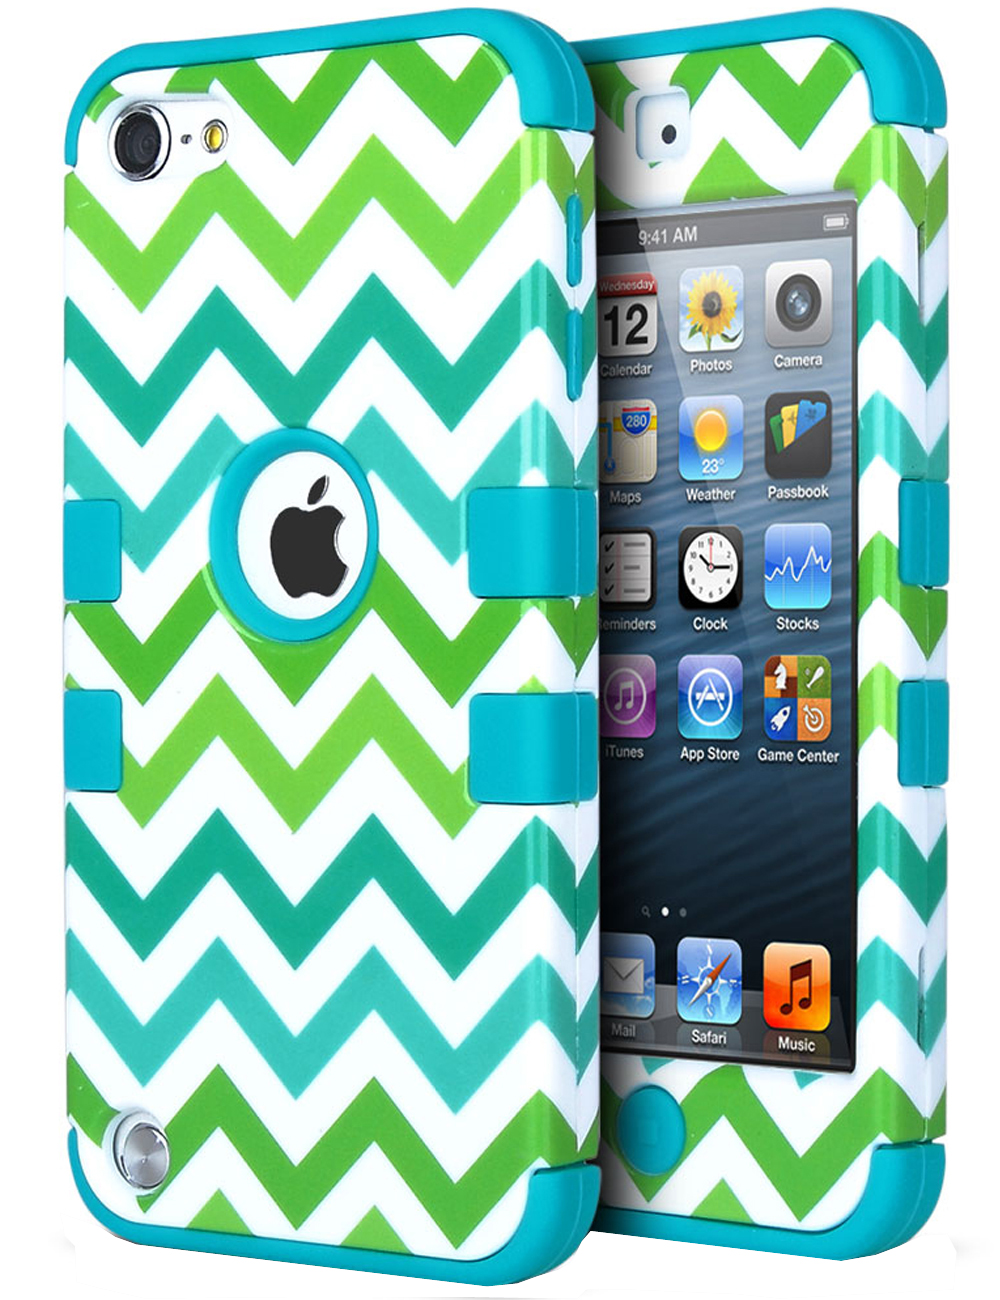 separation shoes eab94 80679 iPod Touch 7 Case, iPod Touch 6th Generation Case,ULAK Hybrid Dual Layer  Hybrid Shockproof Cover Case Silicon Hard Cover for iPod Touch 5 5th Gen /  6 ...